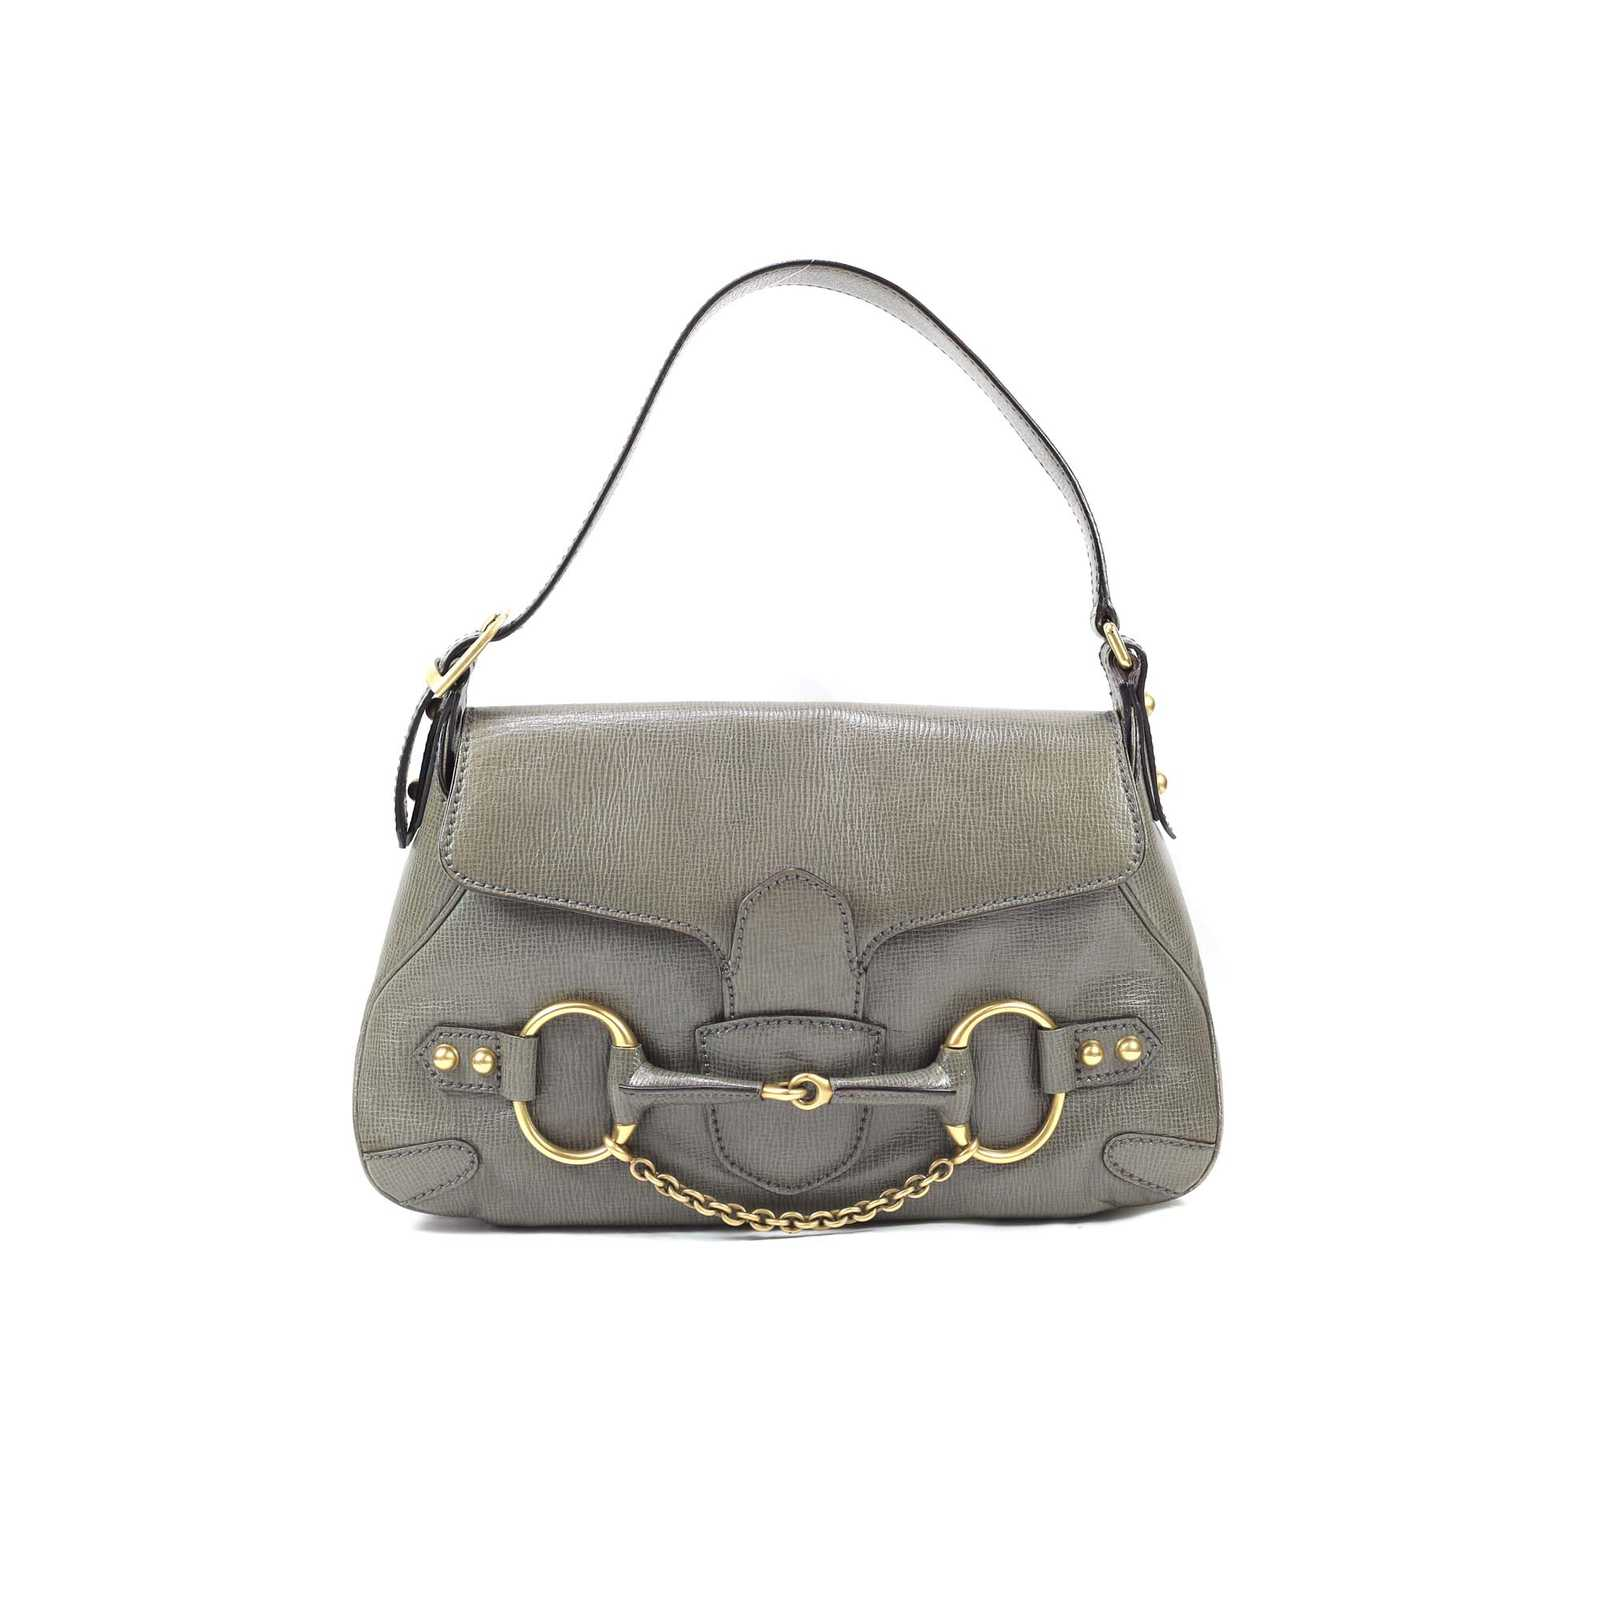 4746e3228b4 Authentic Second Hand Gucci Horsebit Bag Pss 005 00019 The Fifth